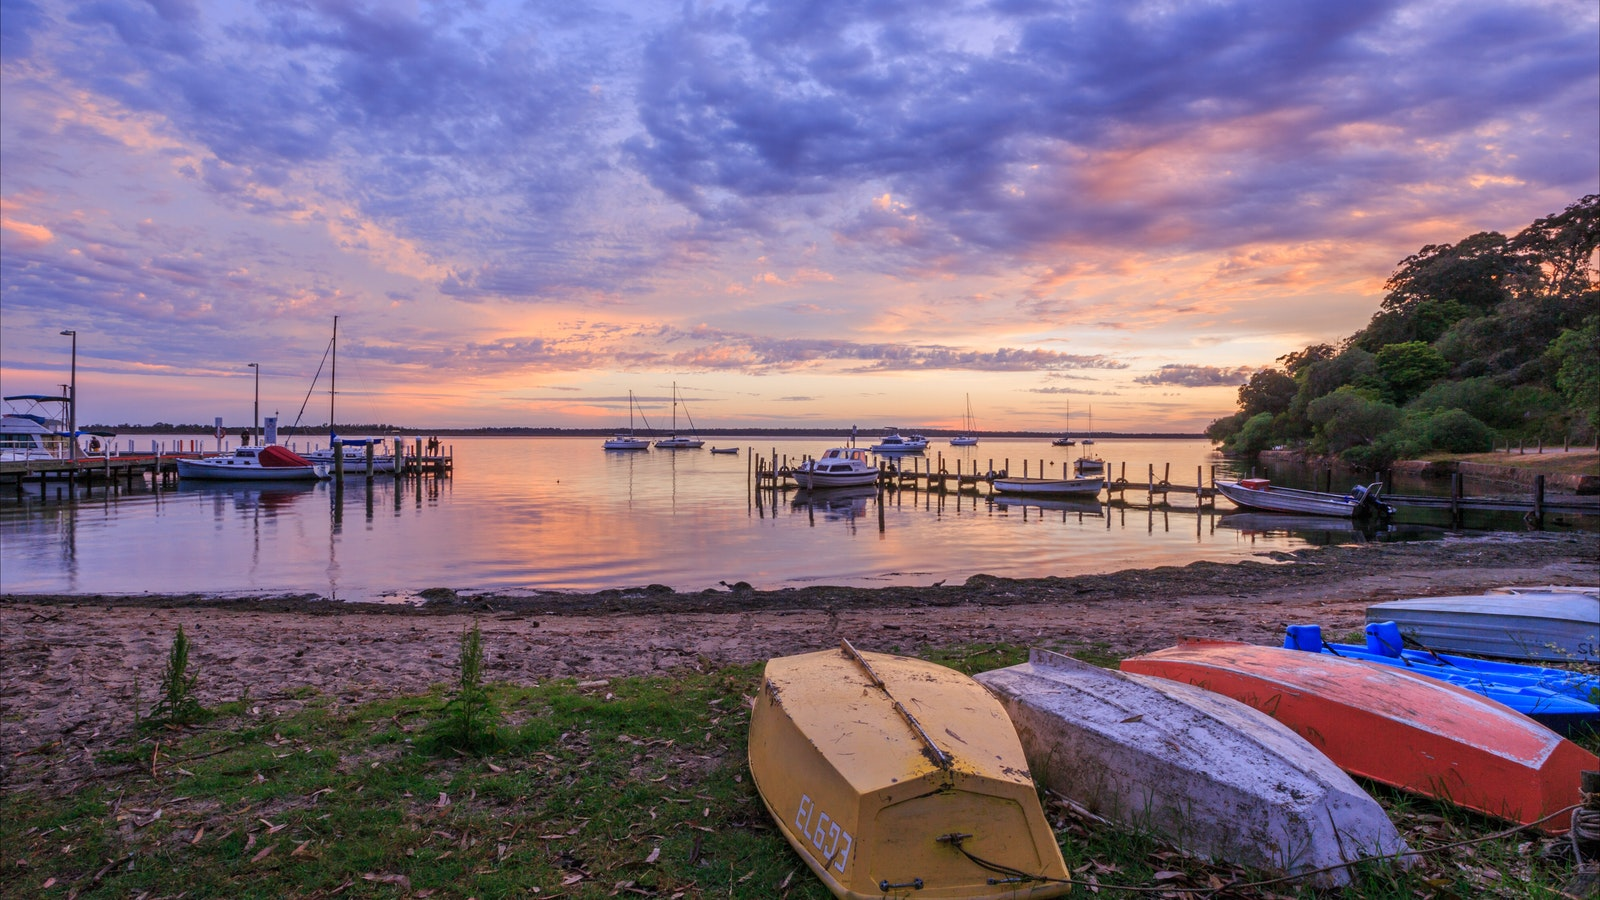 SunsetNungurner Jetty - a perfect place to relax and enjoy life's simple pleasures